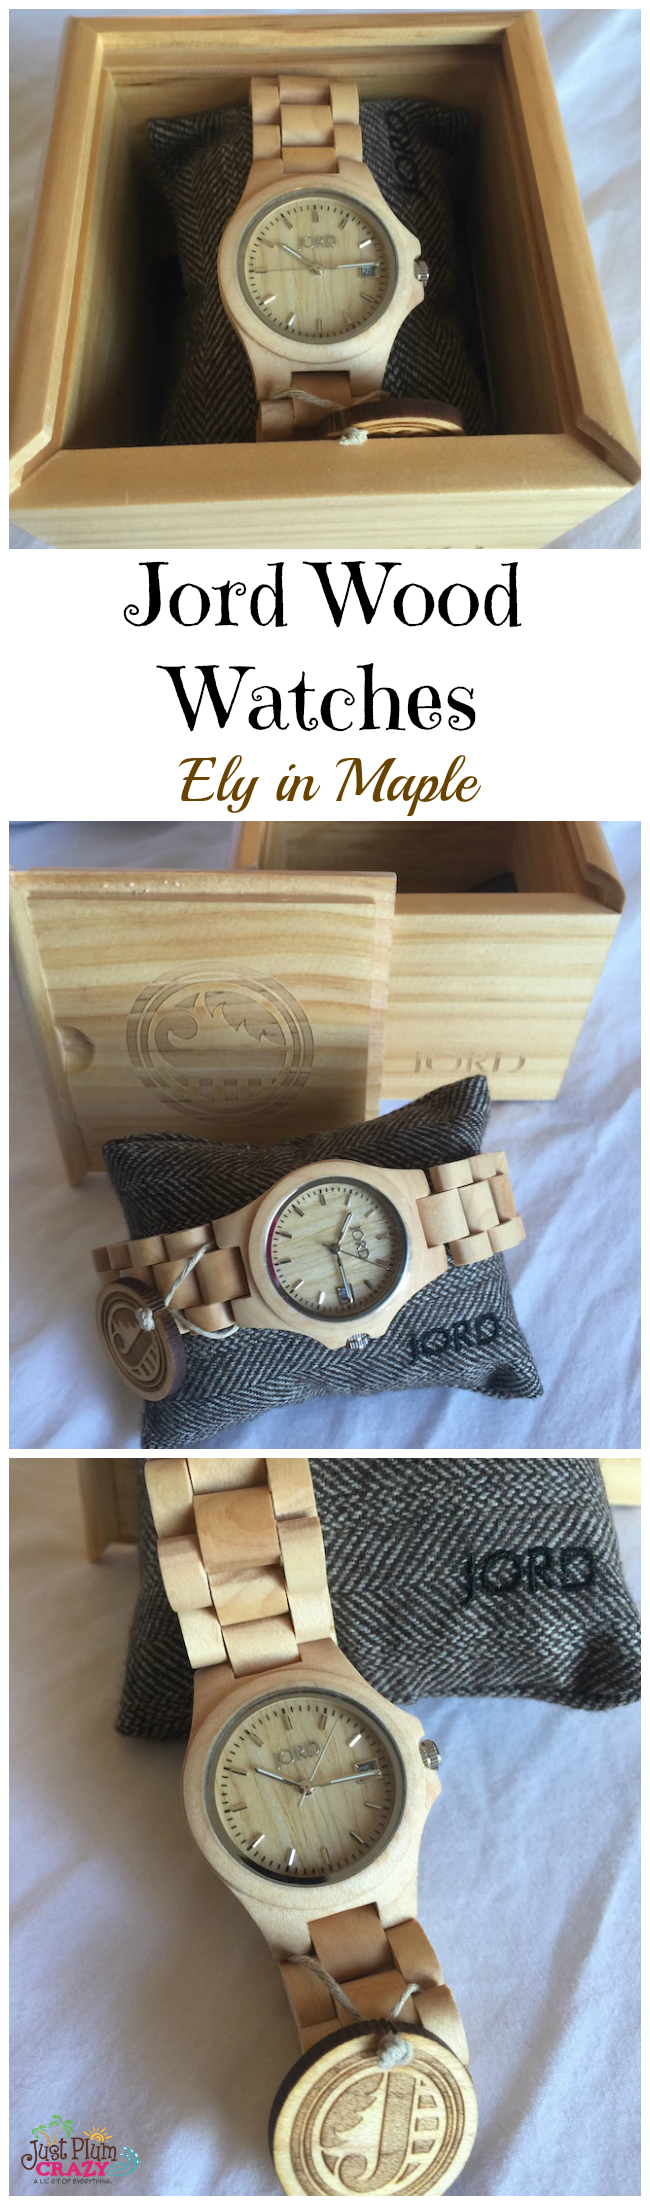 I didn't realize there were so many different Jord Wood Watches. Zebrawood, Cherry, Maple, Bamboo, & Koa plus the different styles, colors and combinations.